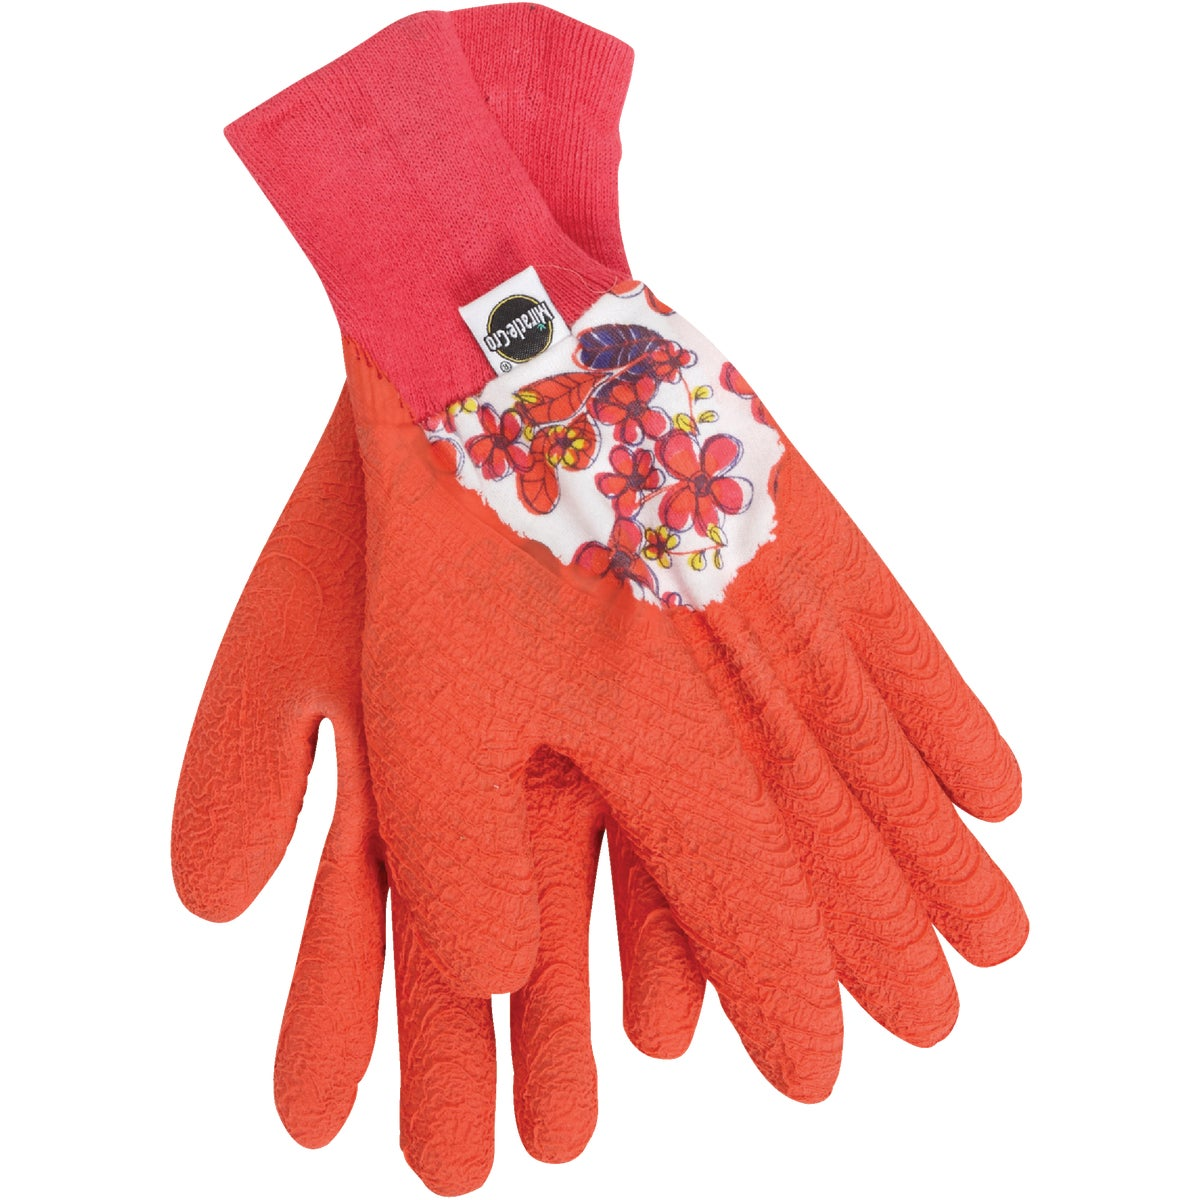 MED LADY LATEX CTD GLOVE - 512M by Wells Lamont